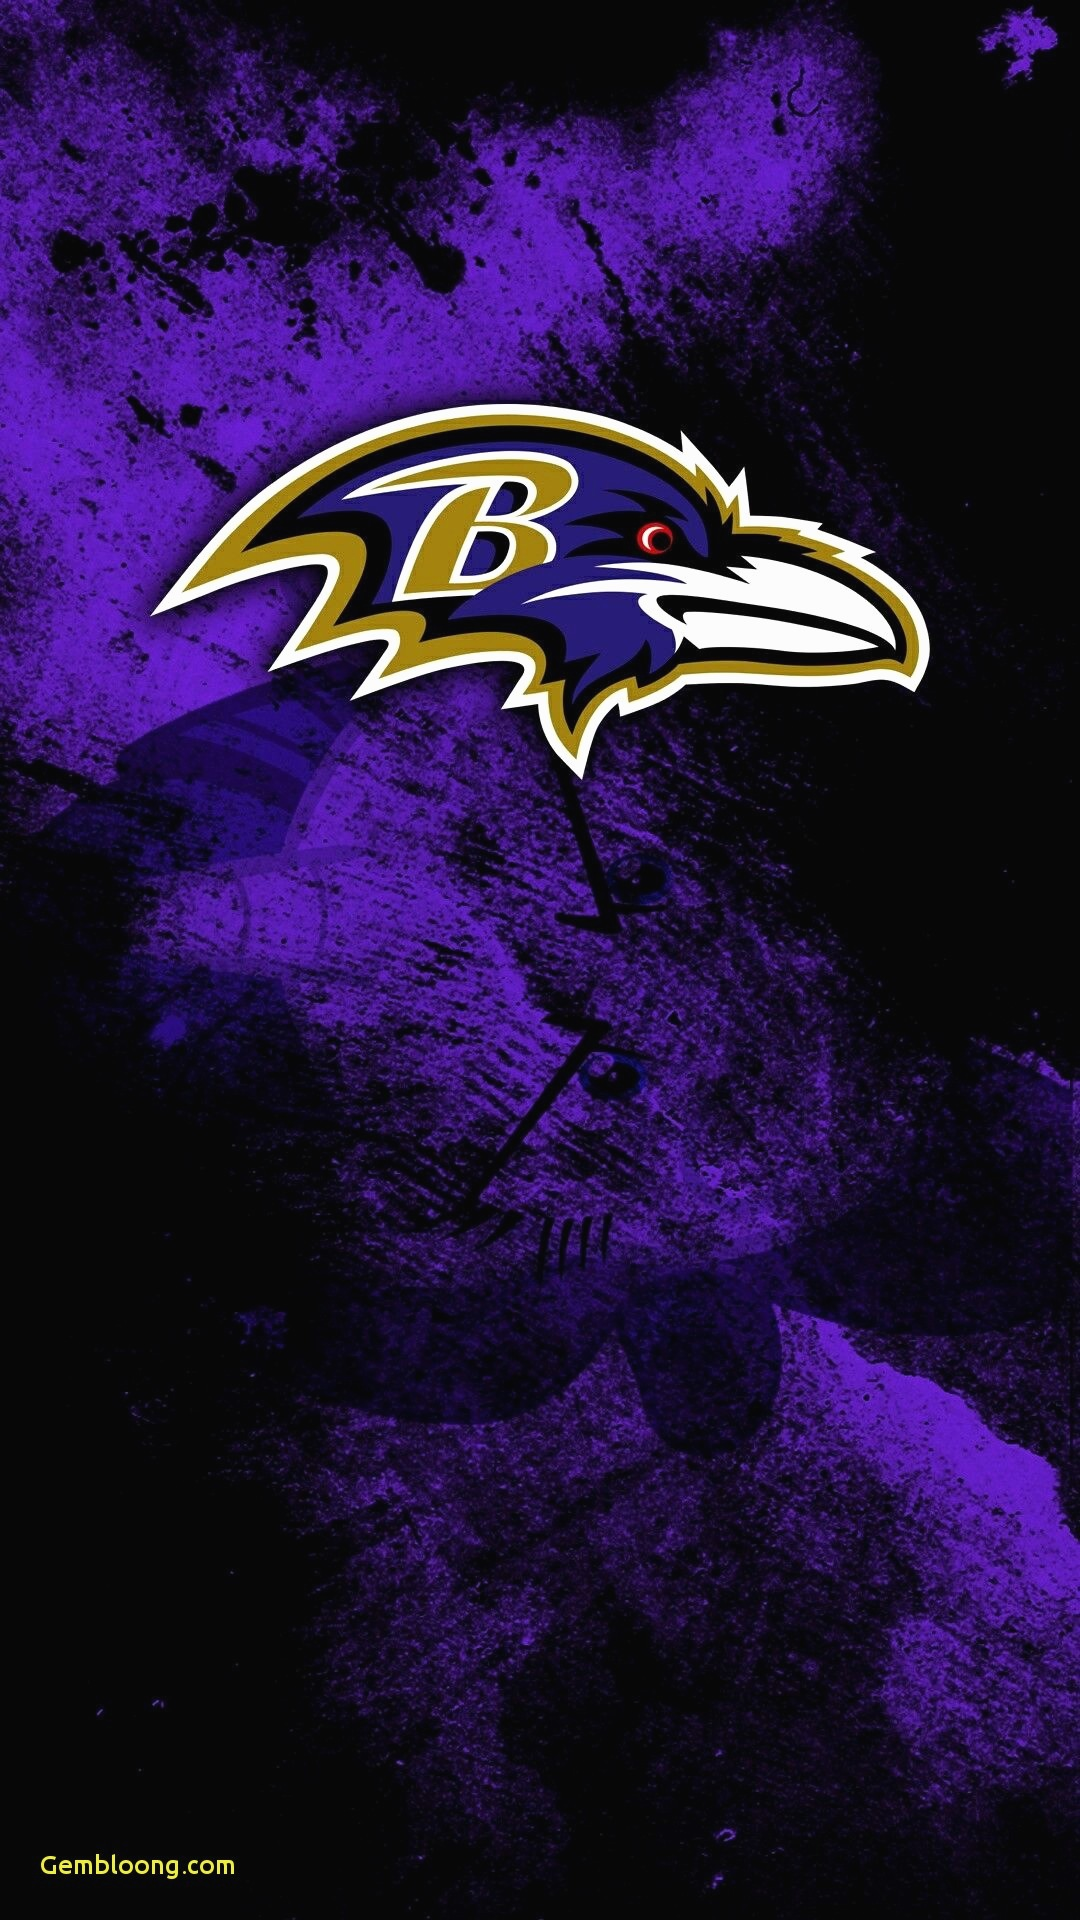 Samsung Lock Screen Wallpaper Hd   Baltimore Ravens Logo Hd 1080x1920